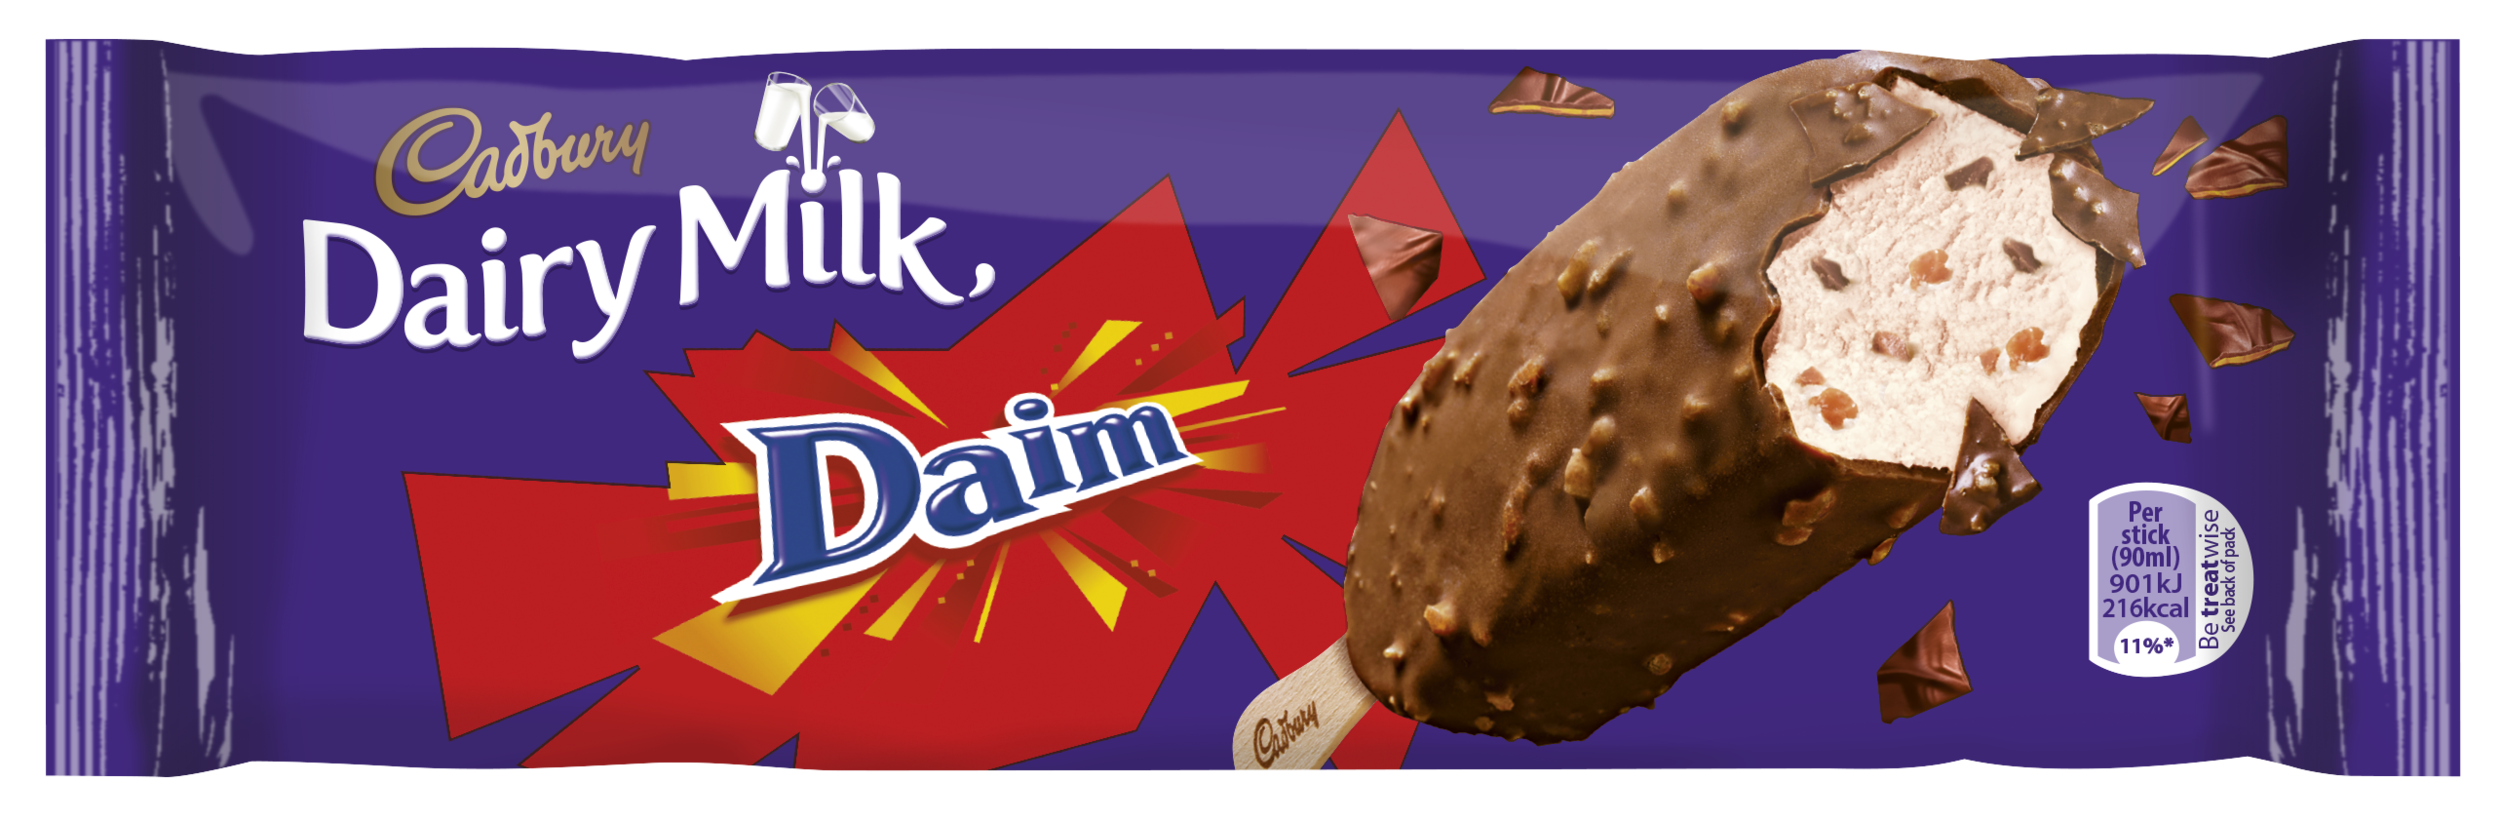 *NEW* Cadburys Dairy Milk with Daim